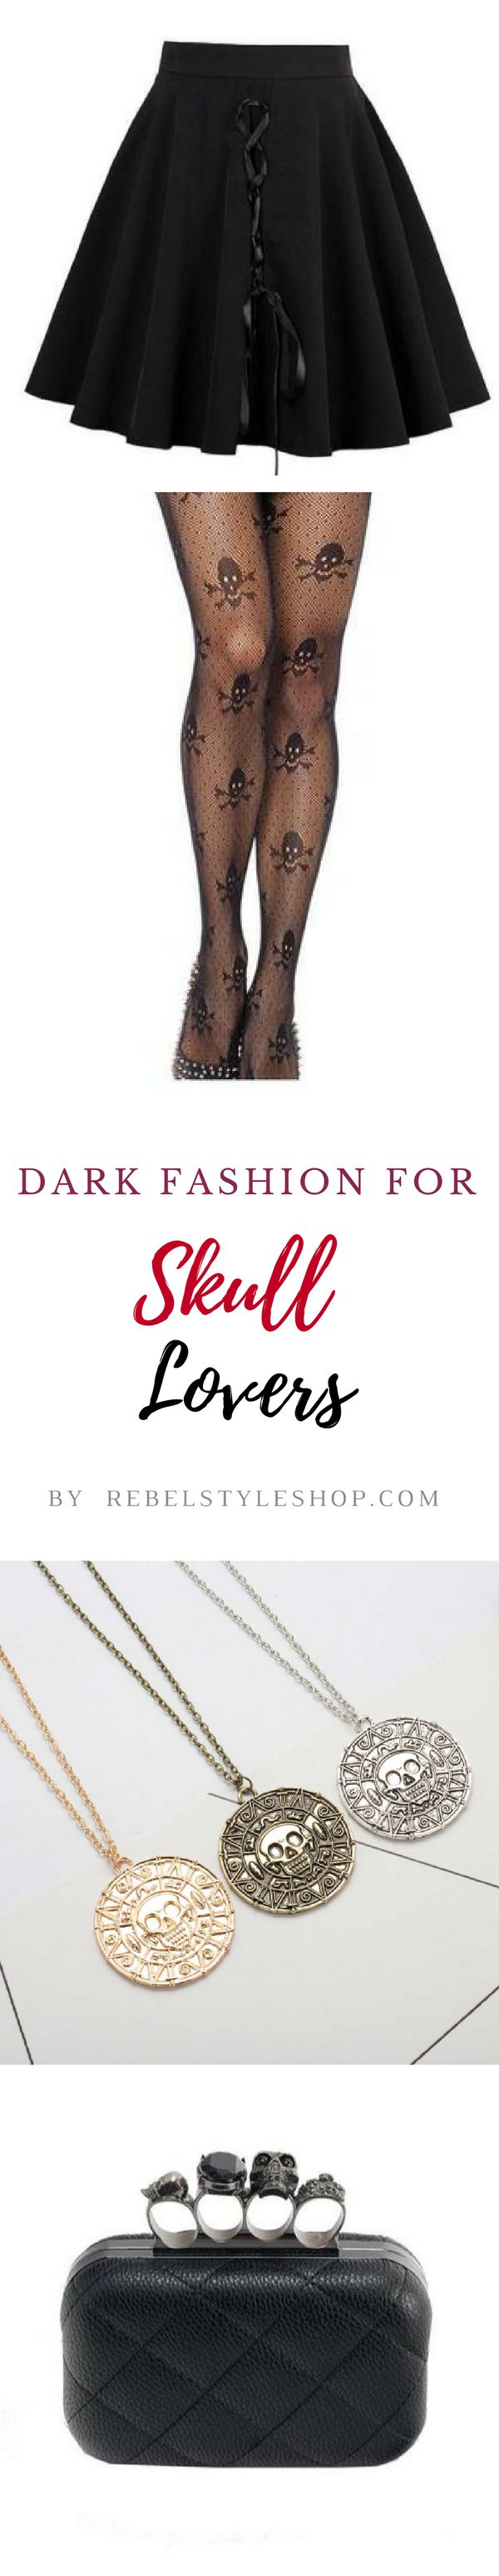 Ideas for dark fashion souls!  skull outfits skull dress sugar skull outfit  skull tights skull purse skull lovers gothic outfit gothic clothes